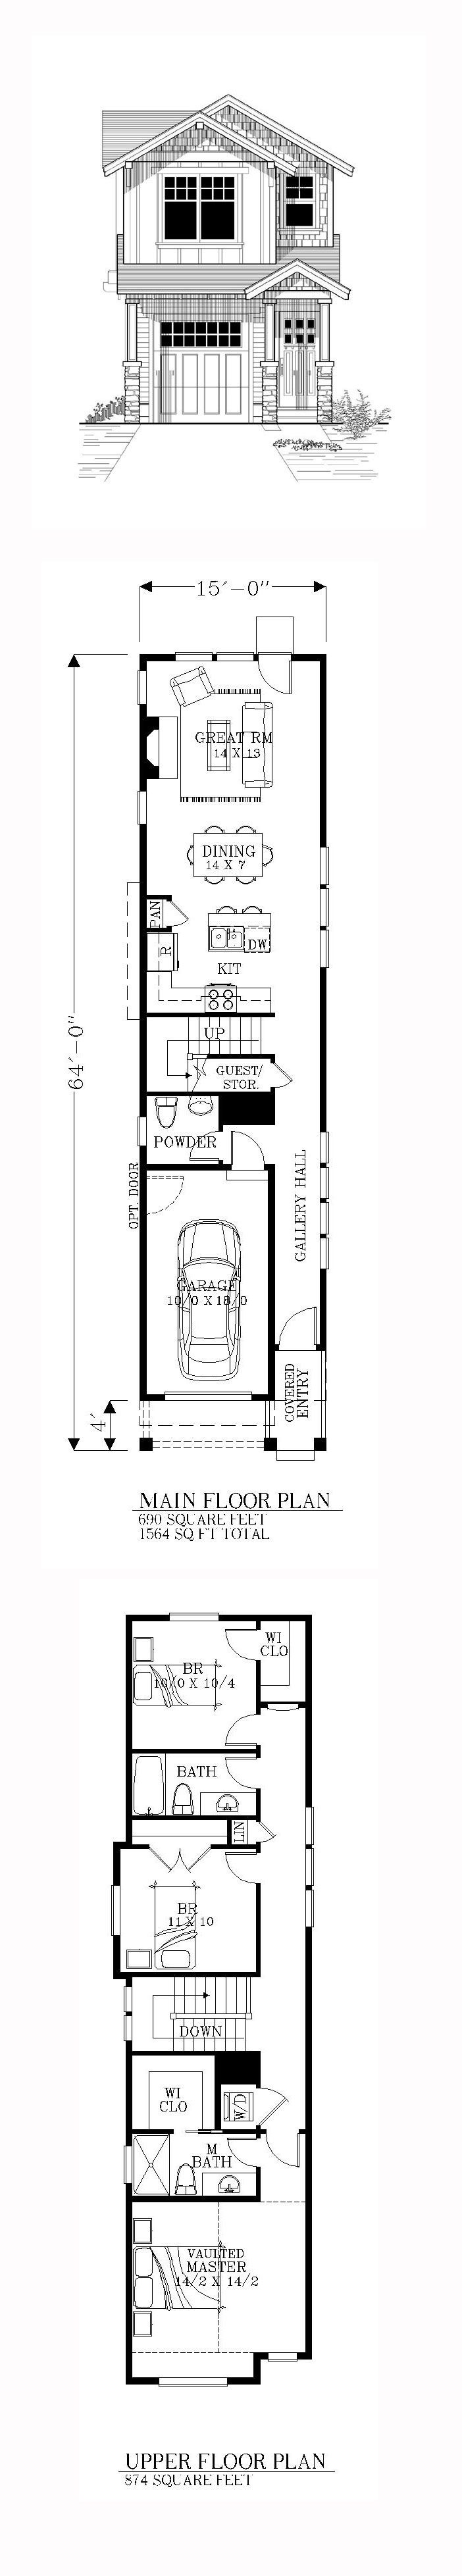 Pleasing 17 Best Ideas About Narrow House Plans On Pinterest Small Home Largest Home Design Picture Inspirations Pitcheantrous